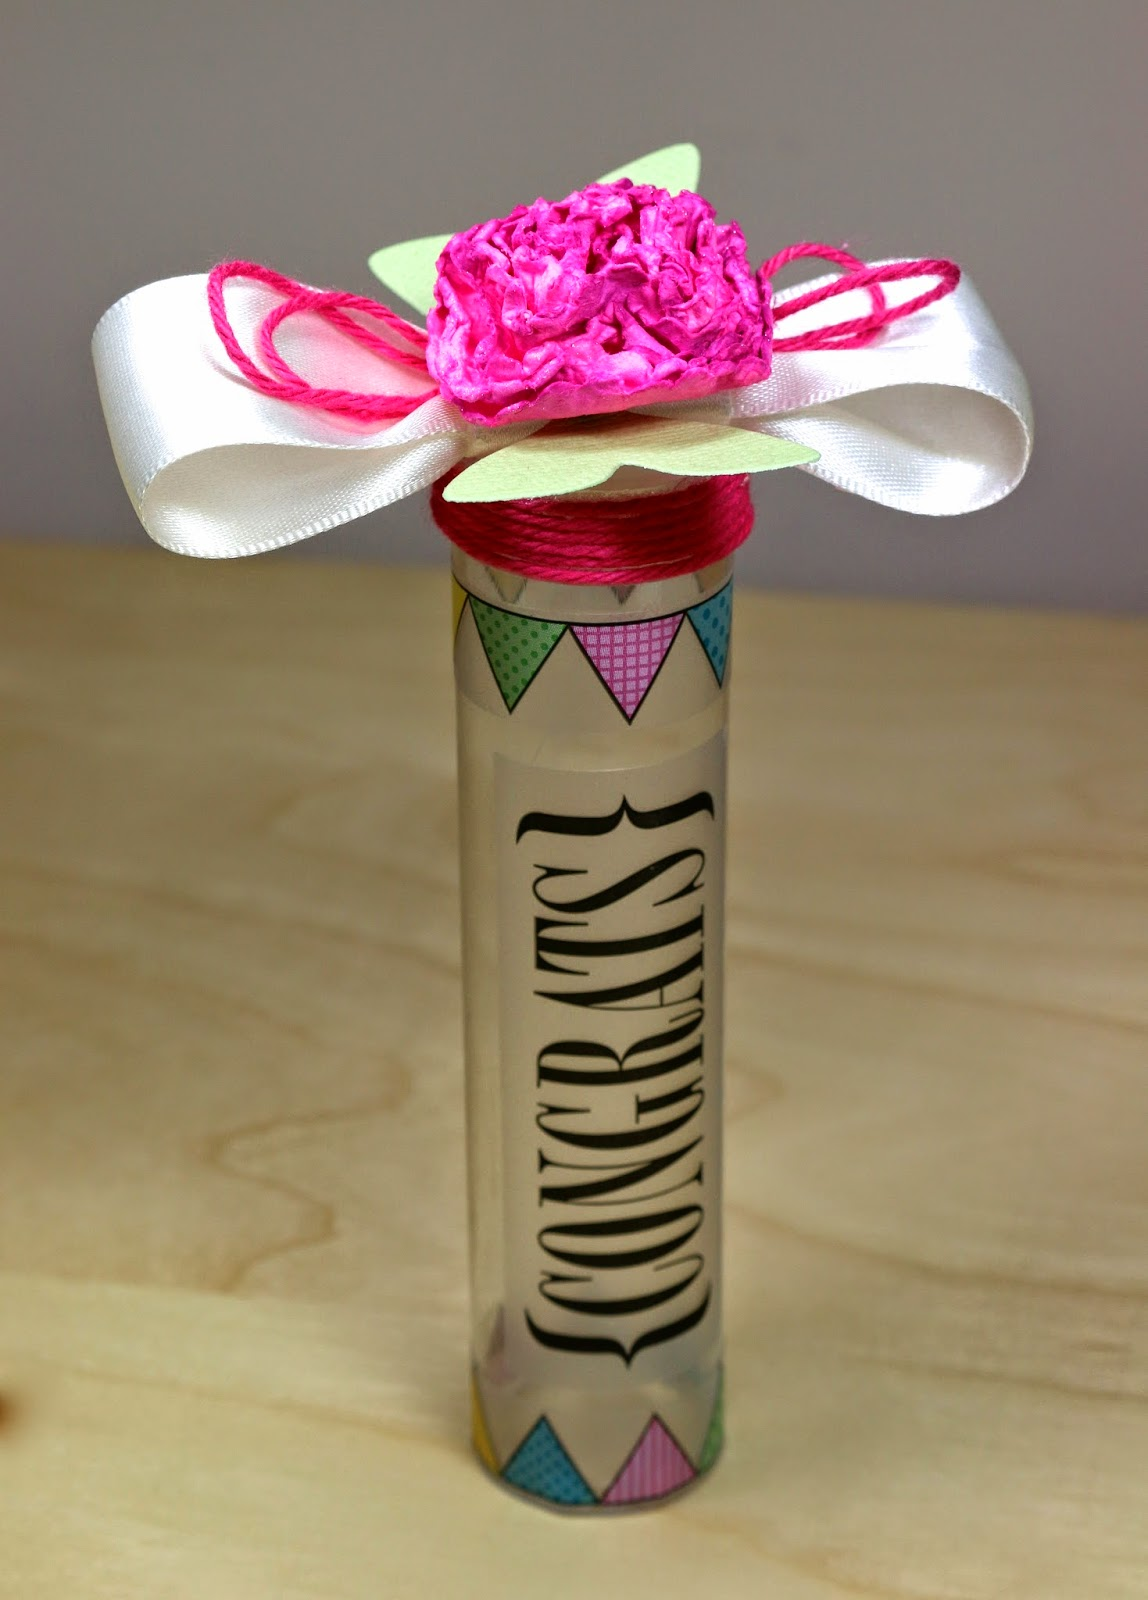 SRM Stickers Blog - Flower Power Tube Tutorial by Cathy A - #tubes #twine #stickers #punched pieces #congrats #favor #gift #container #tutorial